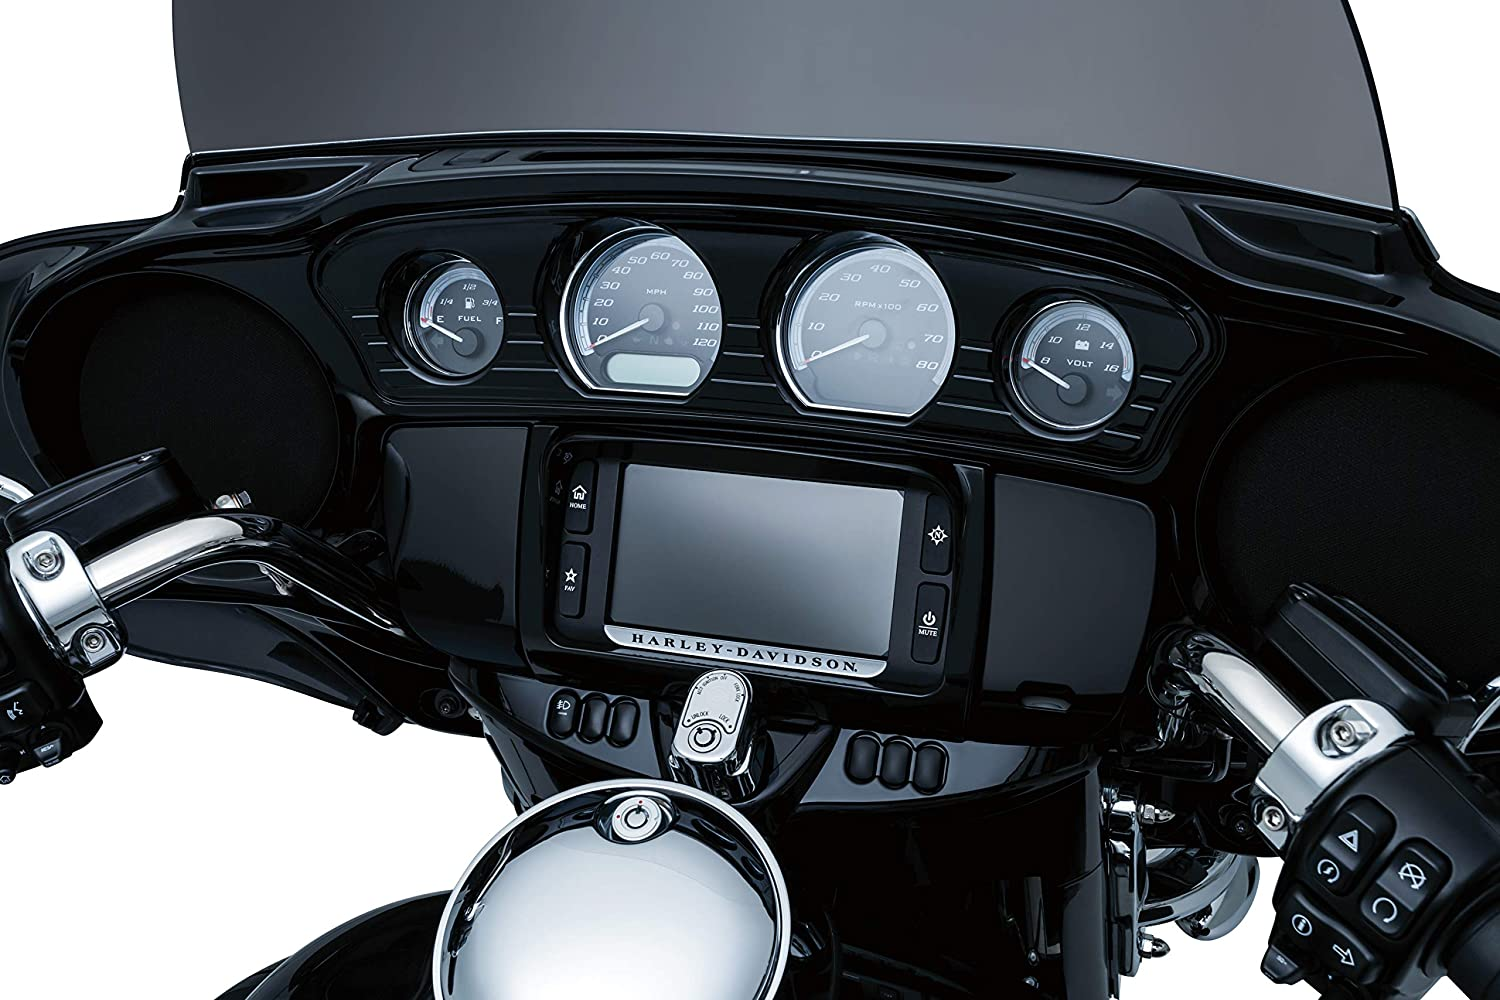 Gloss Black Switch Panel Frame Accent Trim for 2014-19 Harley-Davidson Motorcycles Kuryakyn 7278 Motorcycle Accessory